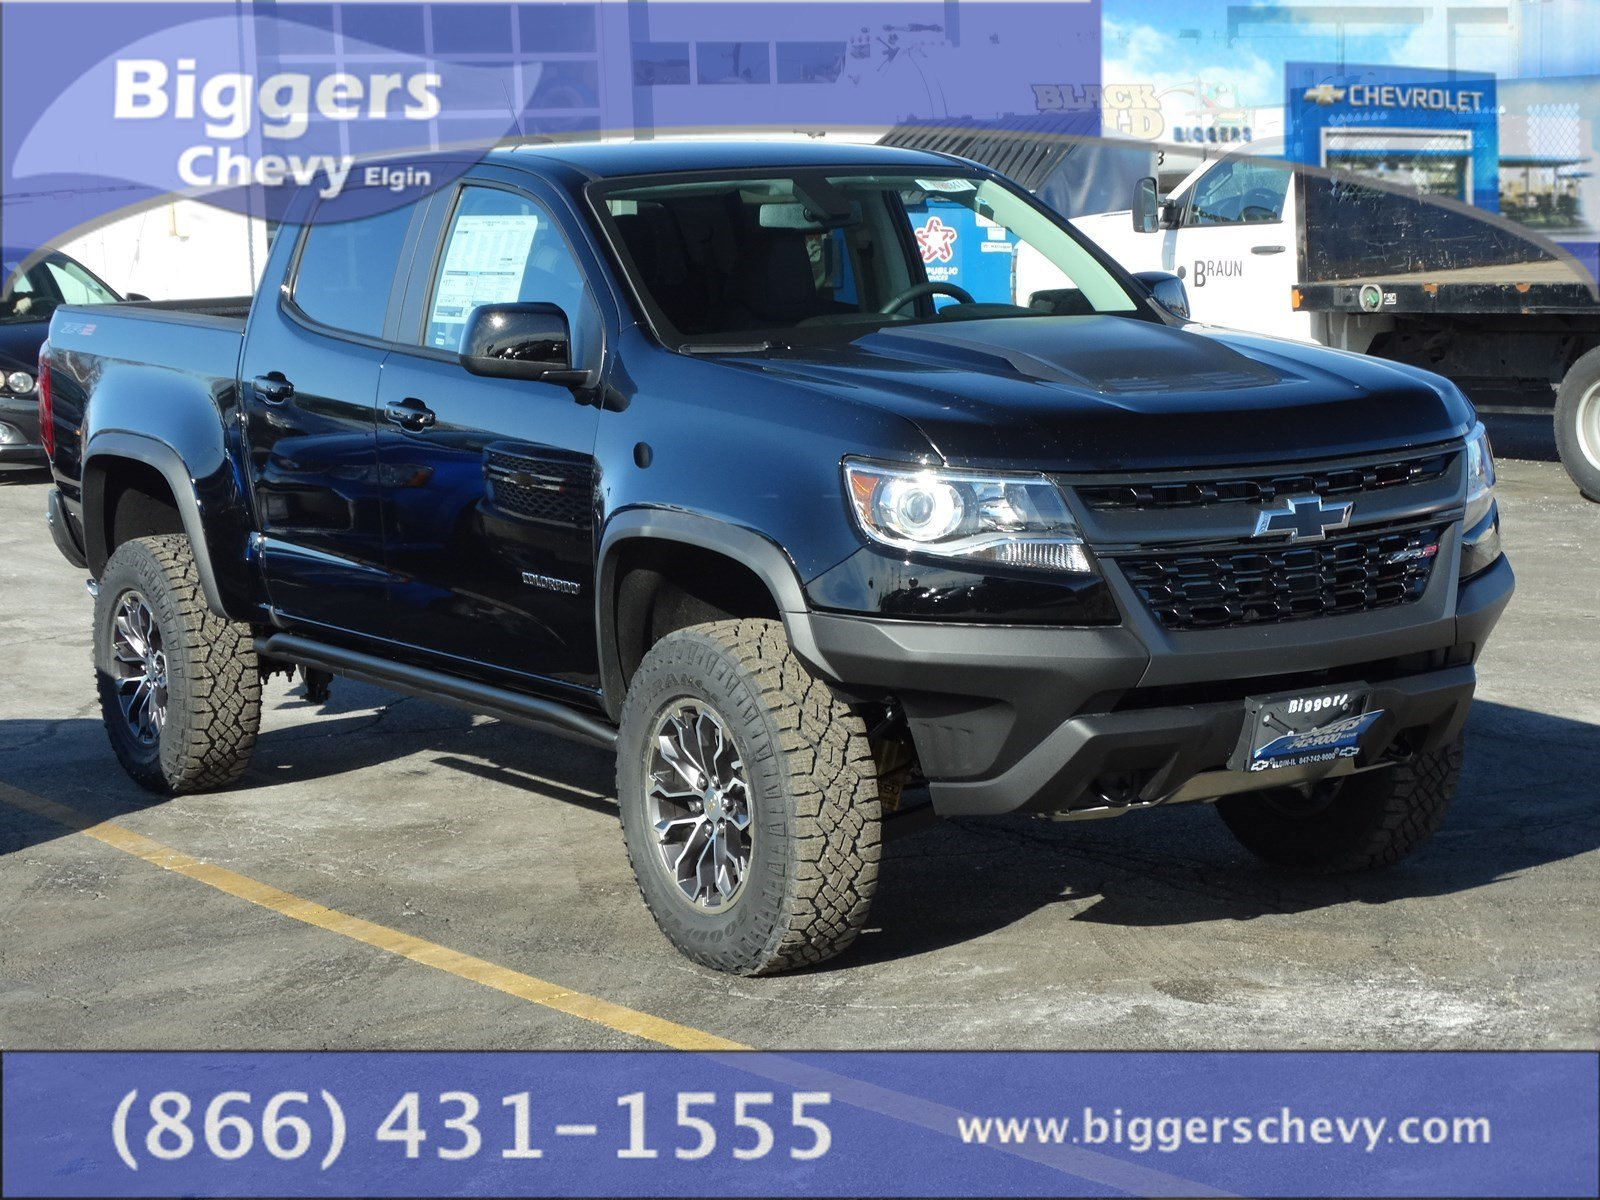 Silverado Special Editions >> New 2018 Chevrolet Colorado ZR2 4D Crew Cab near Schaumburg #3180341 | Biggers Chevrolet